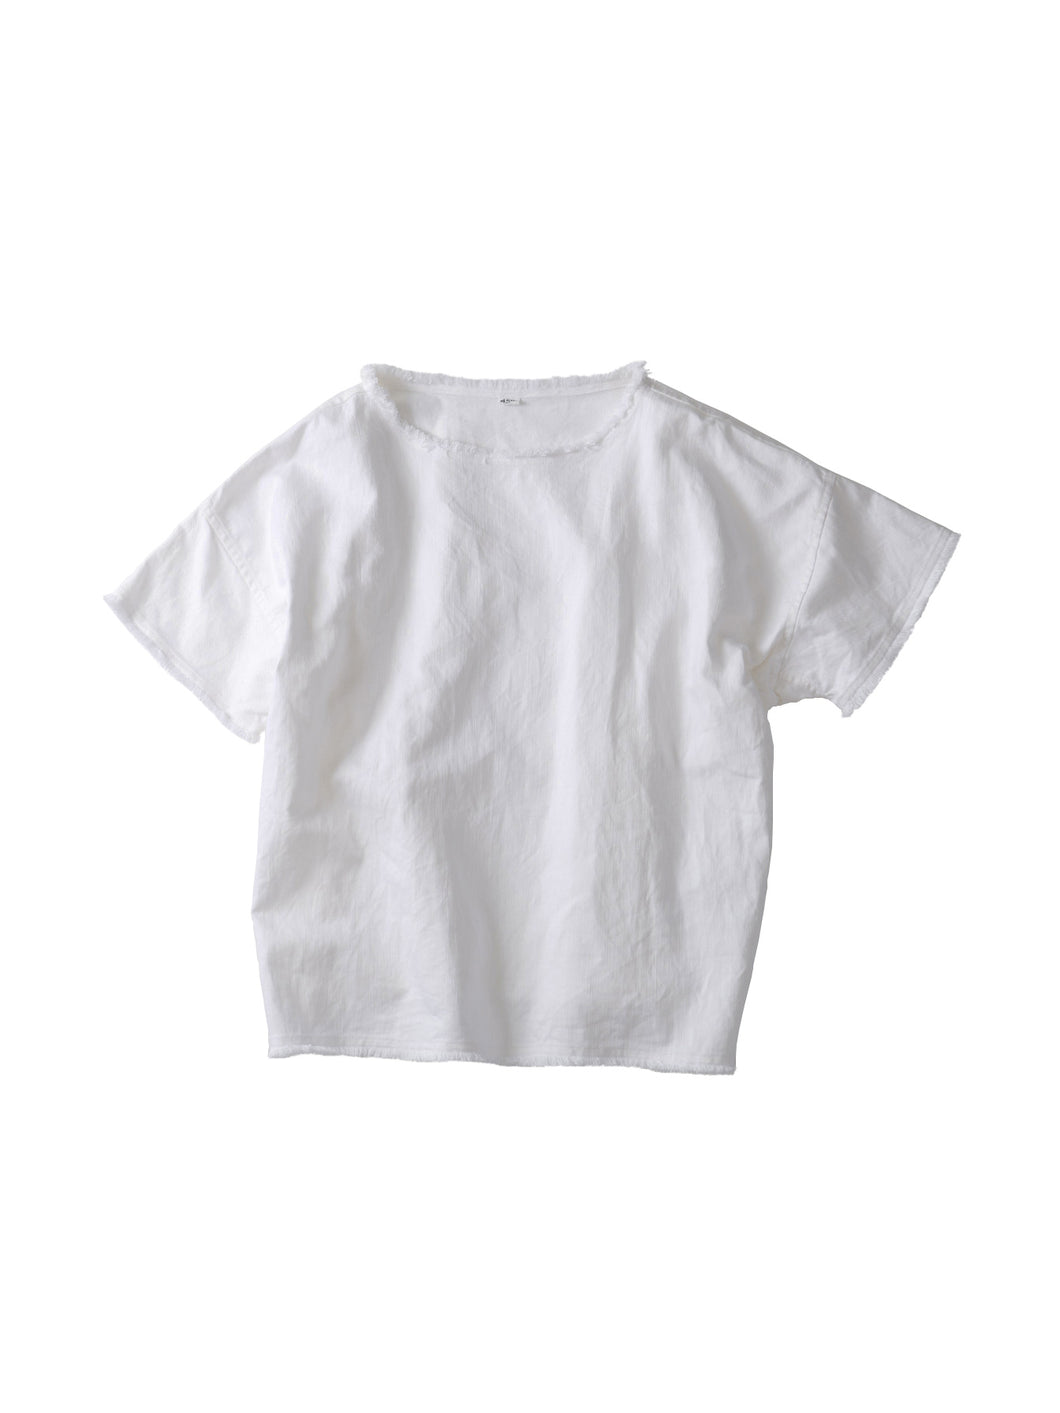 Cotton Linen Denim Big T-shirt in White